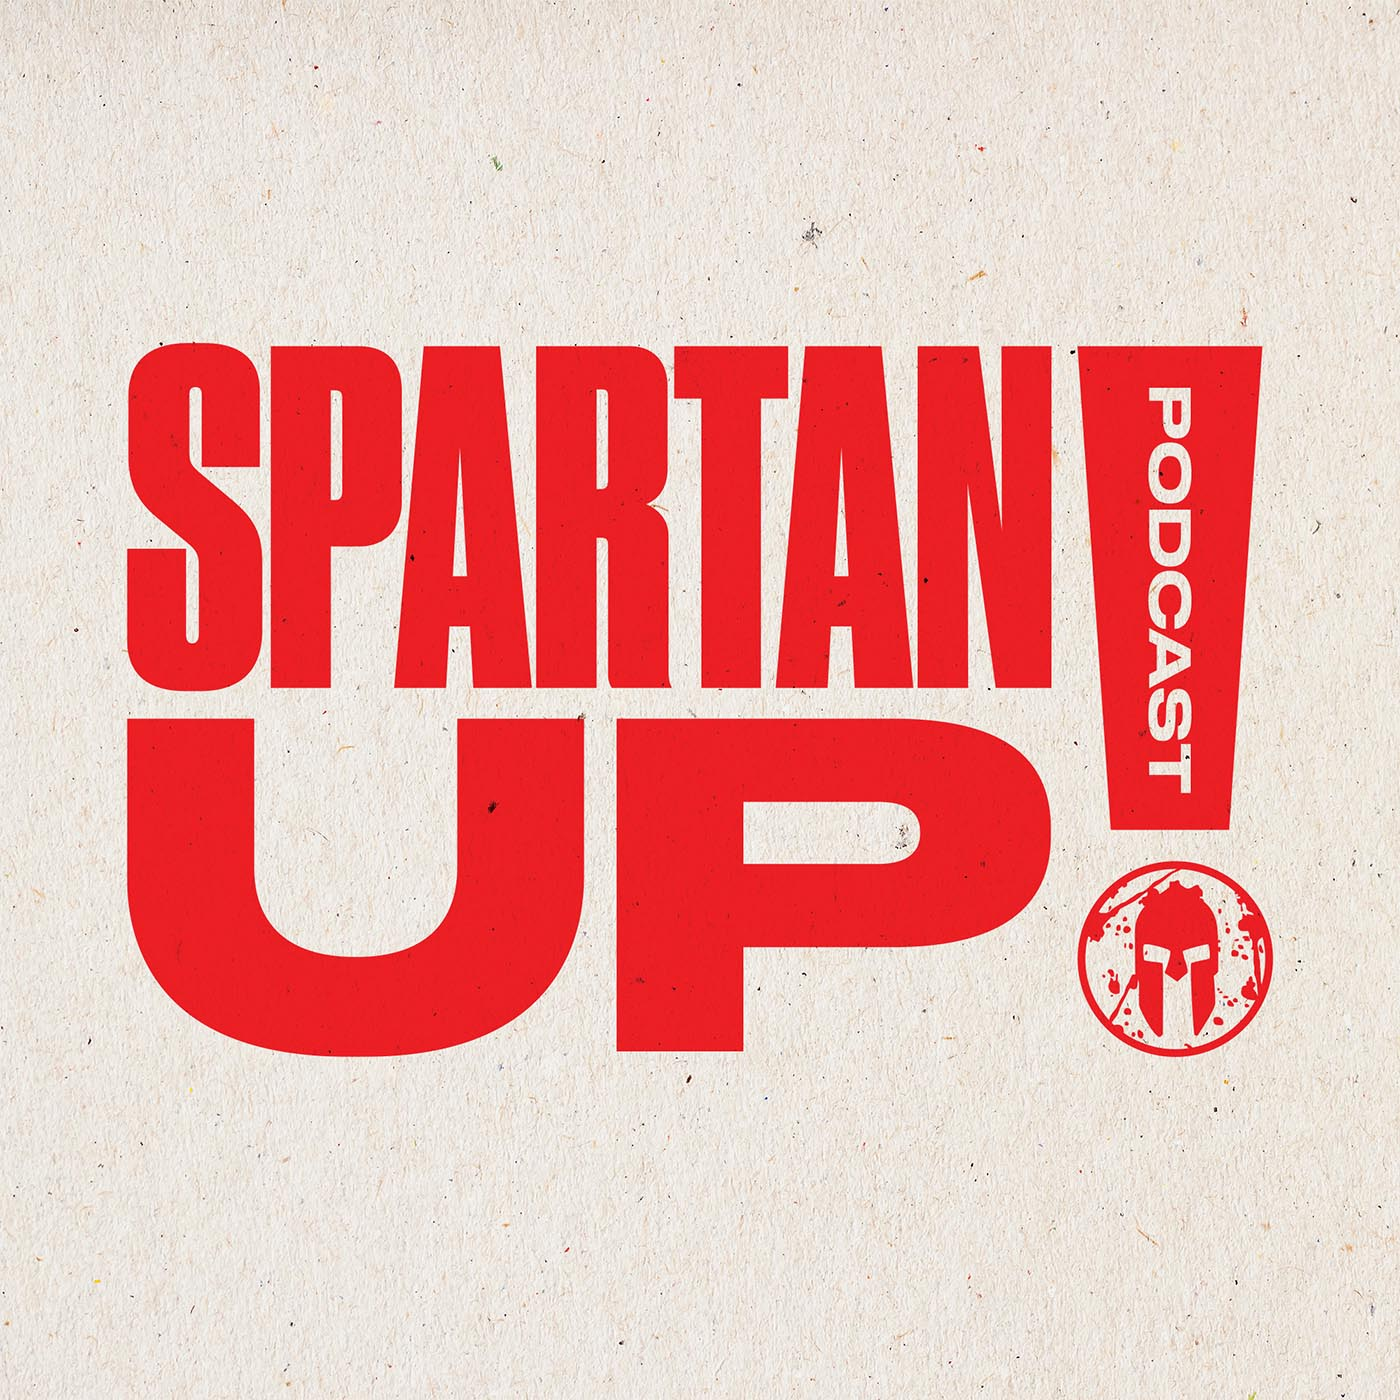 Spartan Up! - A Spartan Race for the Mind!